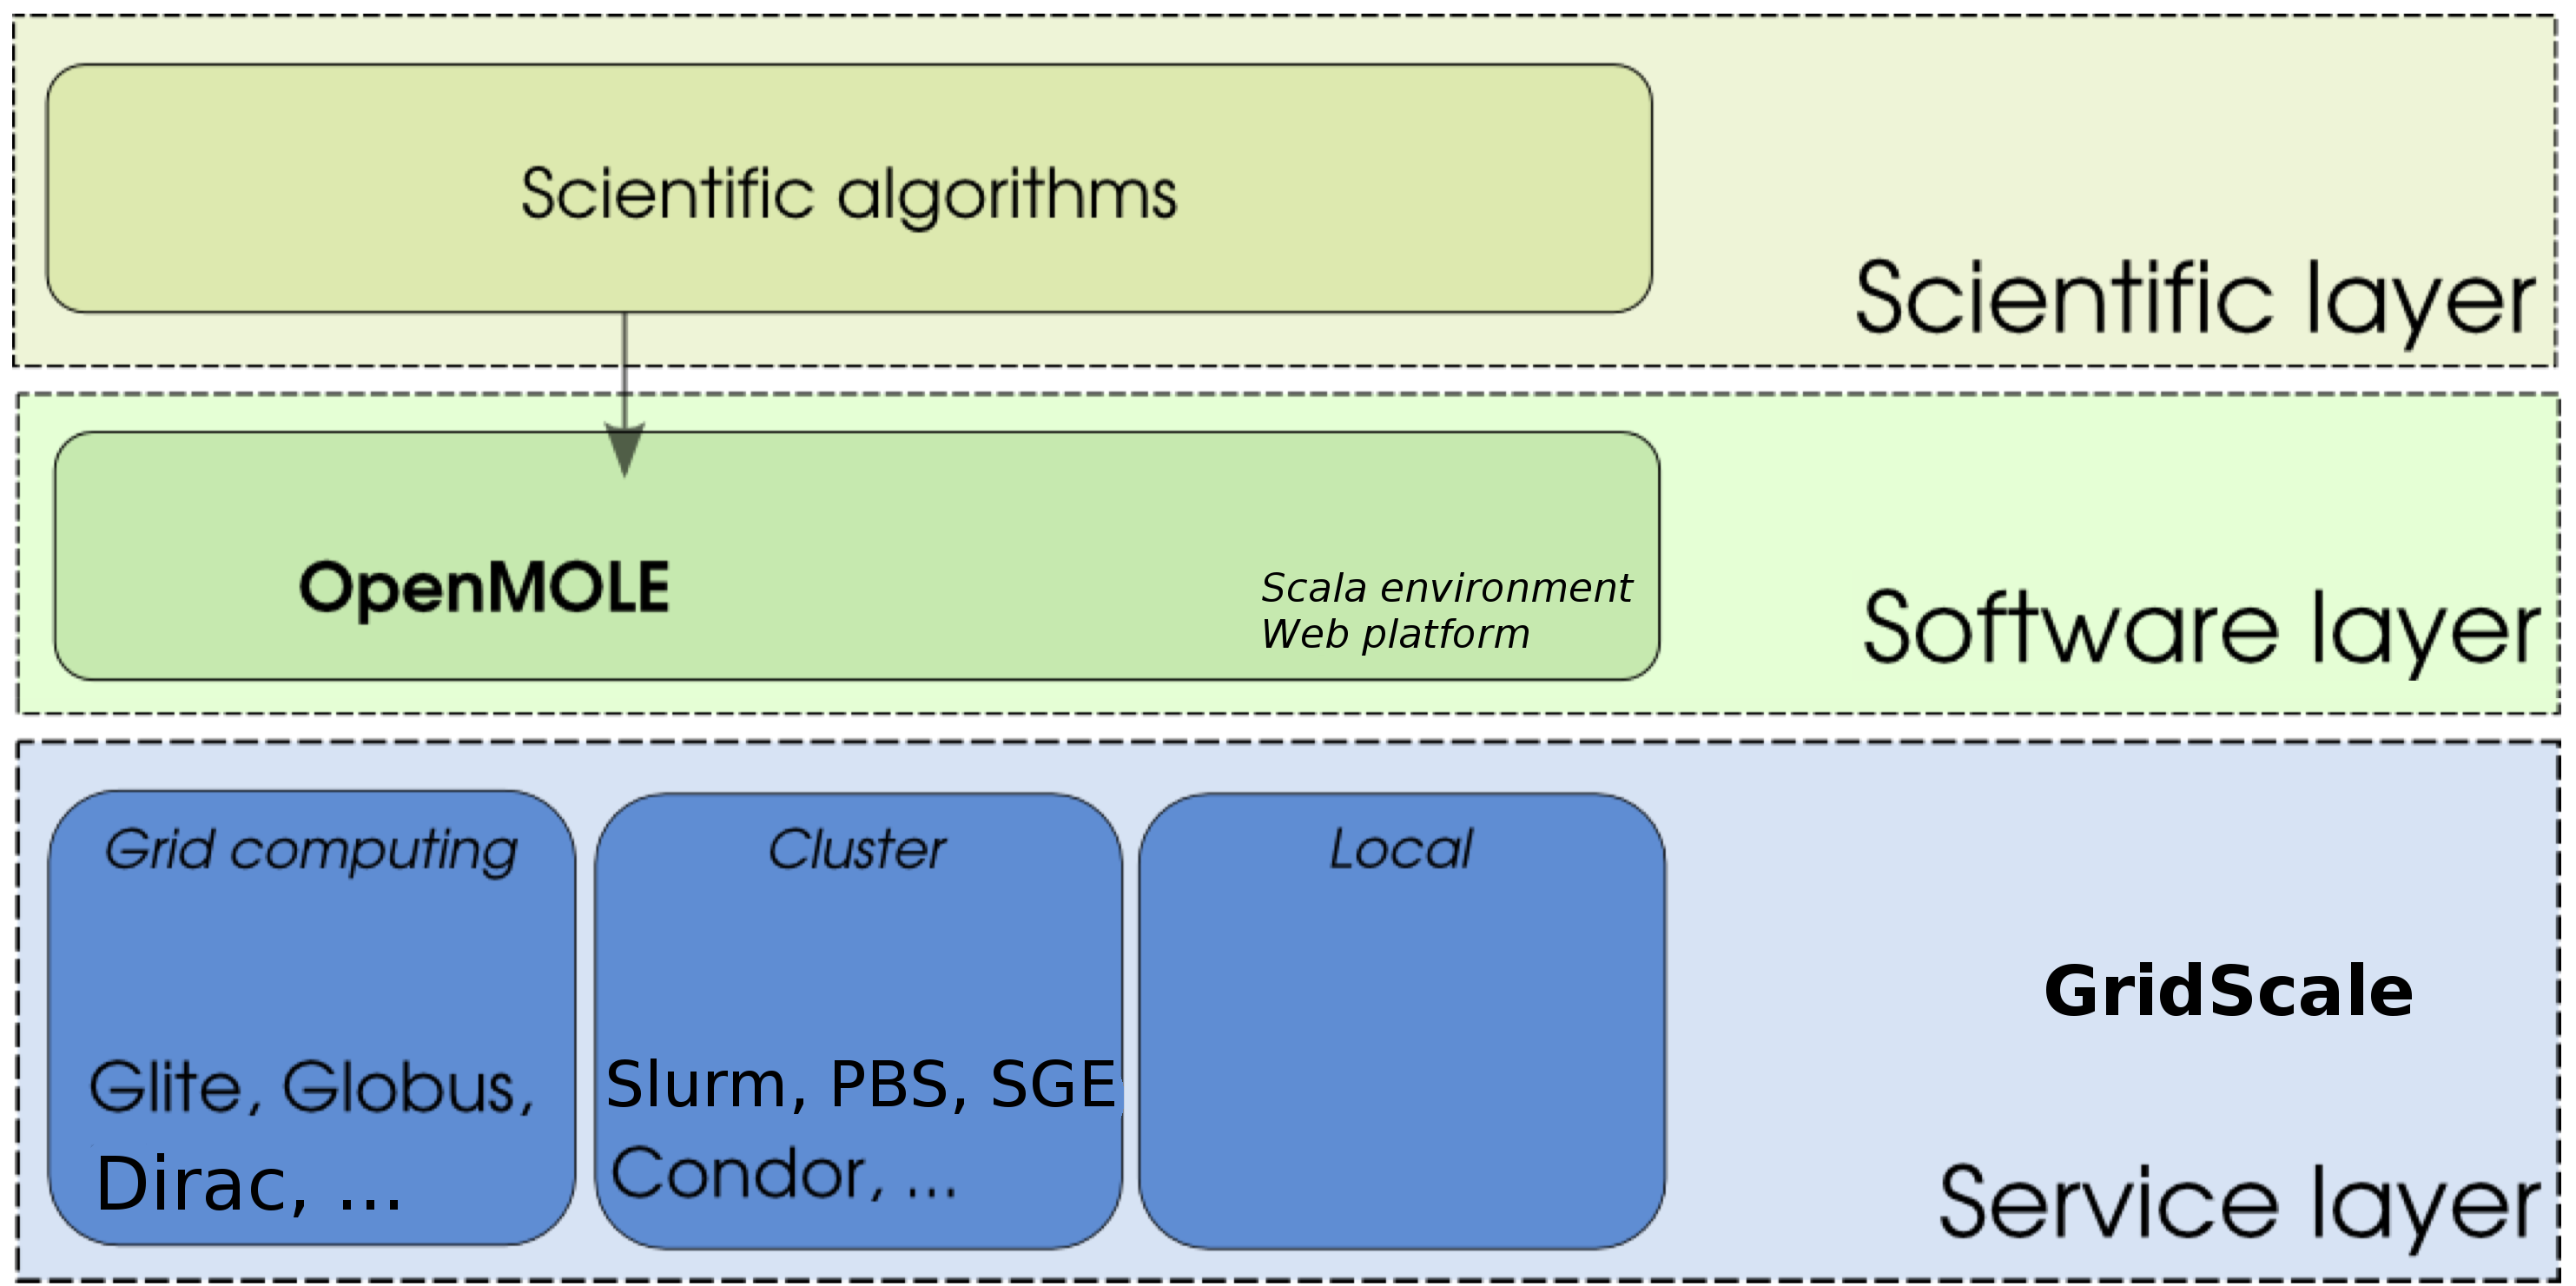 GridScale in the OpenMOLE architecture